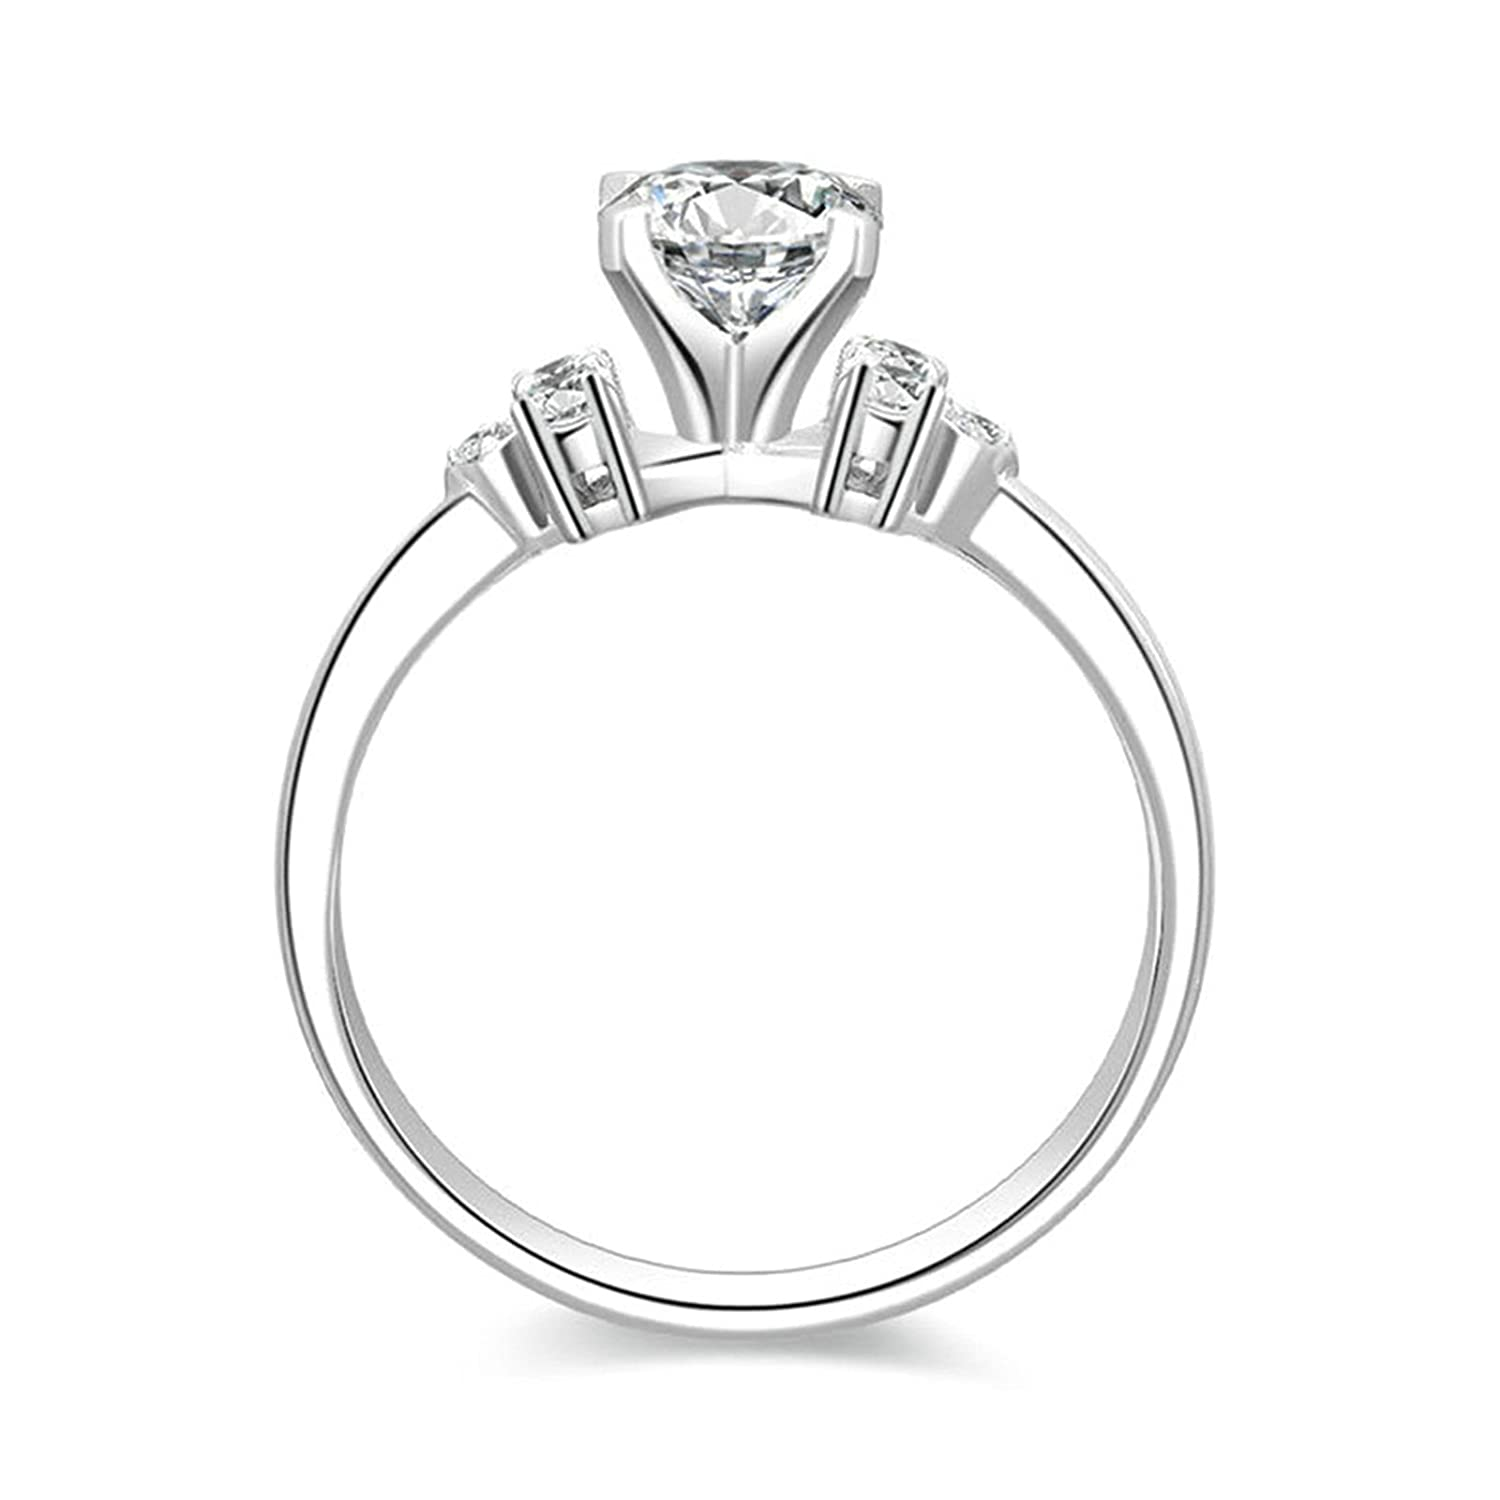 Aokarry Ladies Jewelry 925 Sterling Silver Promise Ring Customize 4-Prong Setting Round White CZ Size 5-12